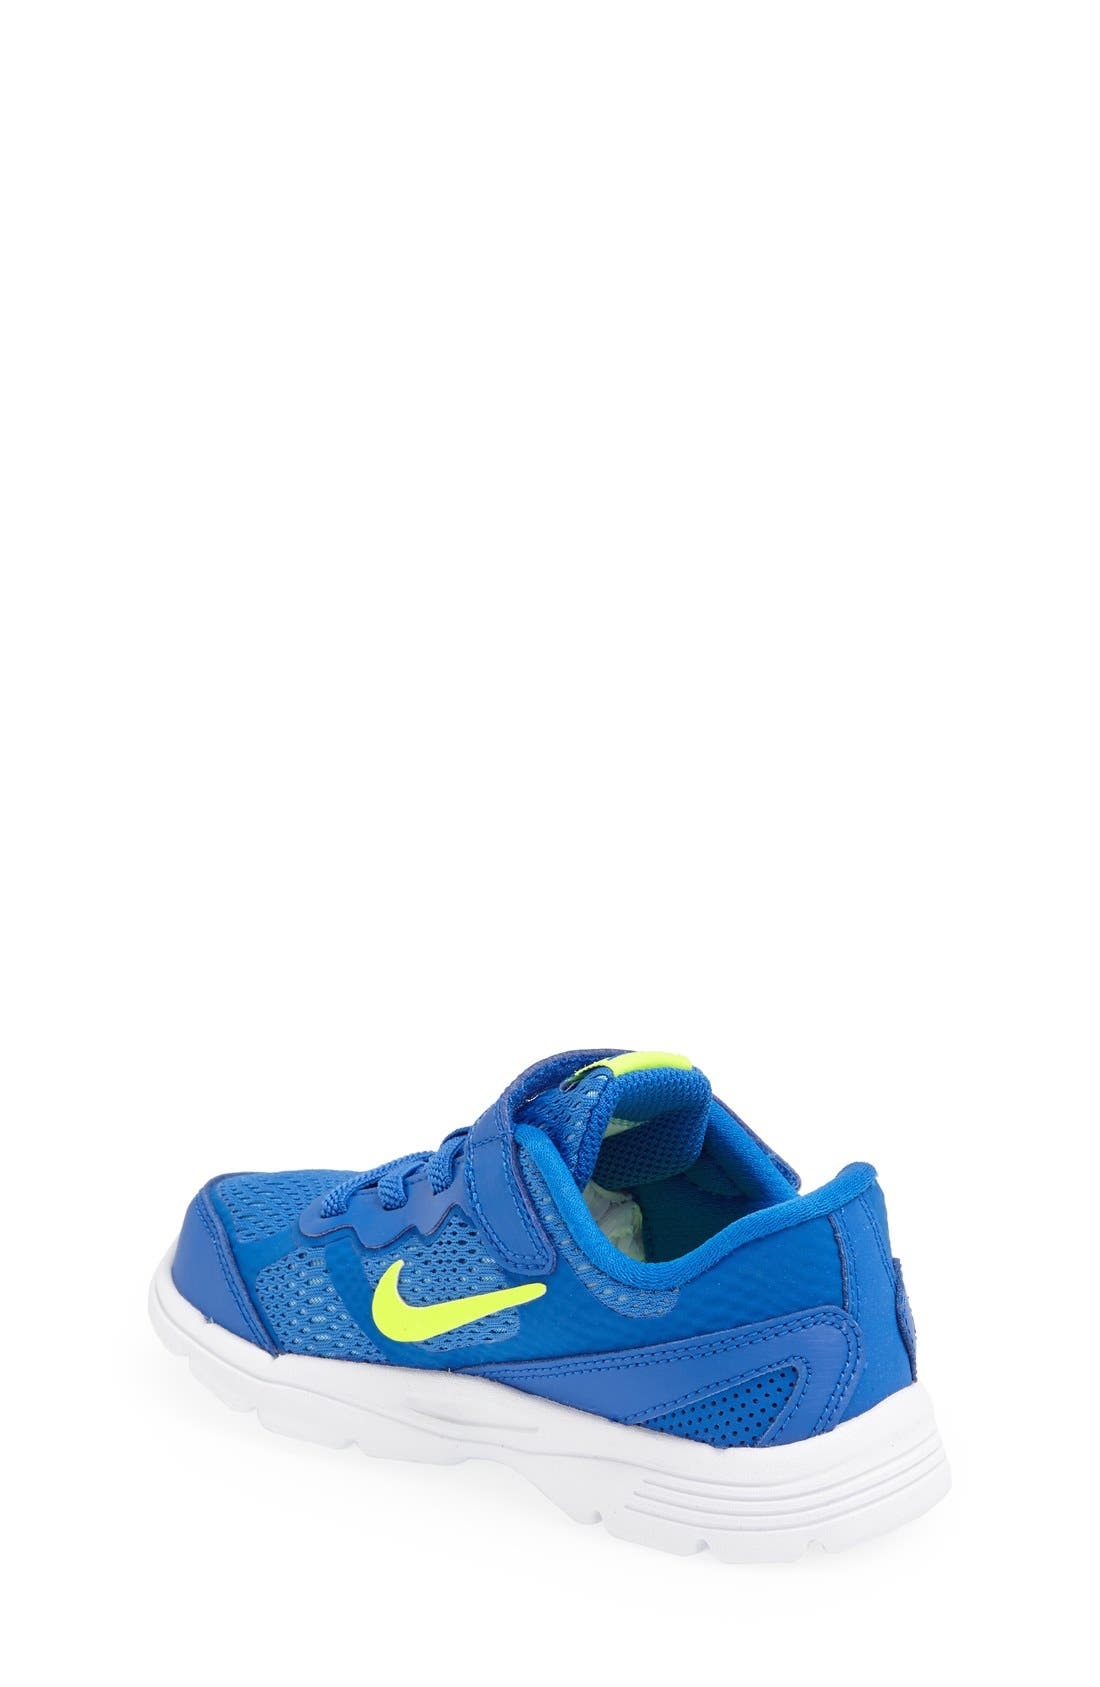 Alternate Image 2  - Nike 'Dual Fusion Run 3' Athletic Shoe (Baby, Walker & Toddler) (Online Only)